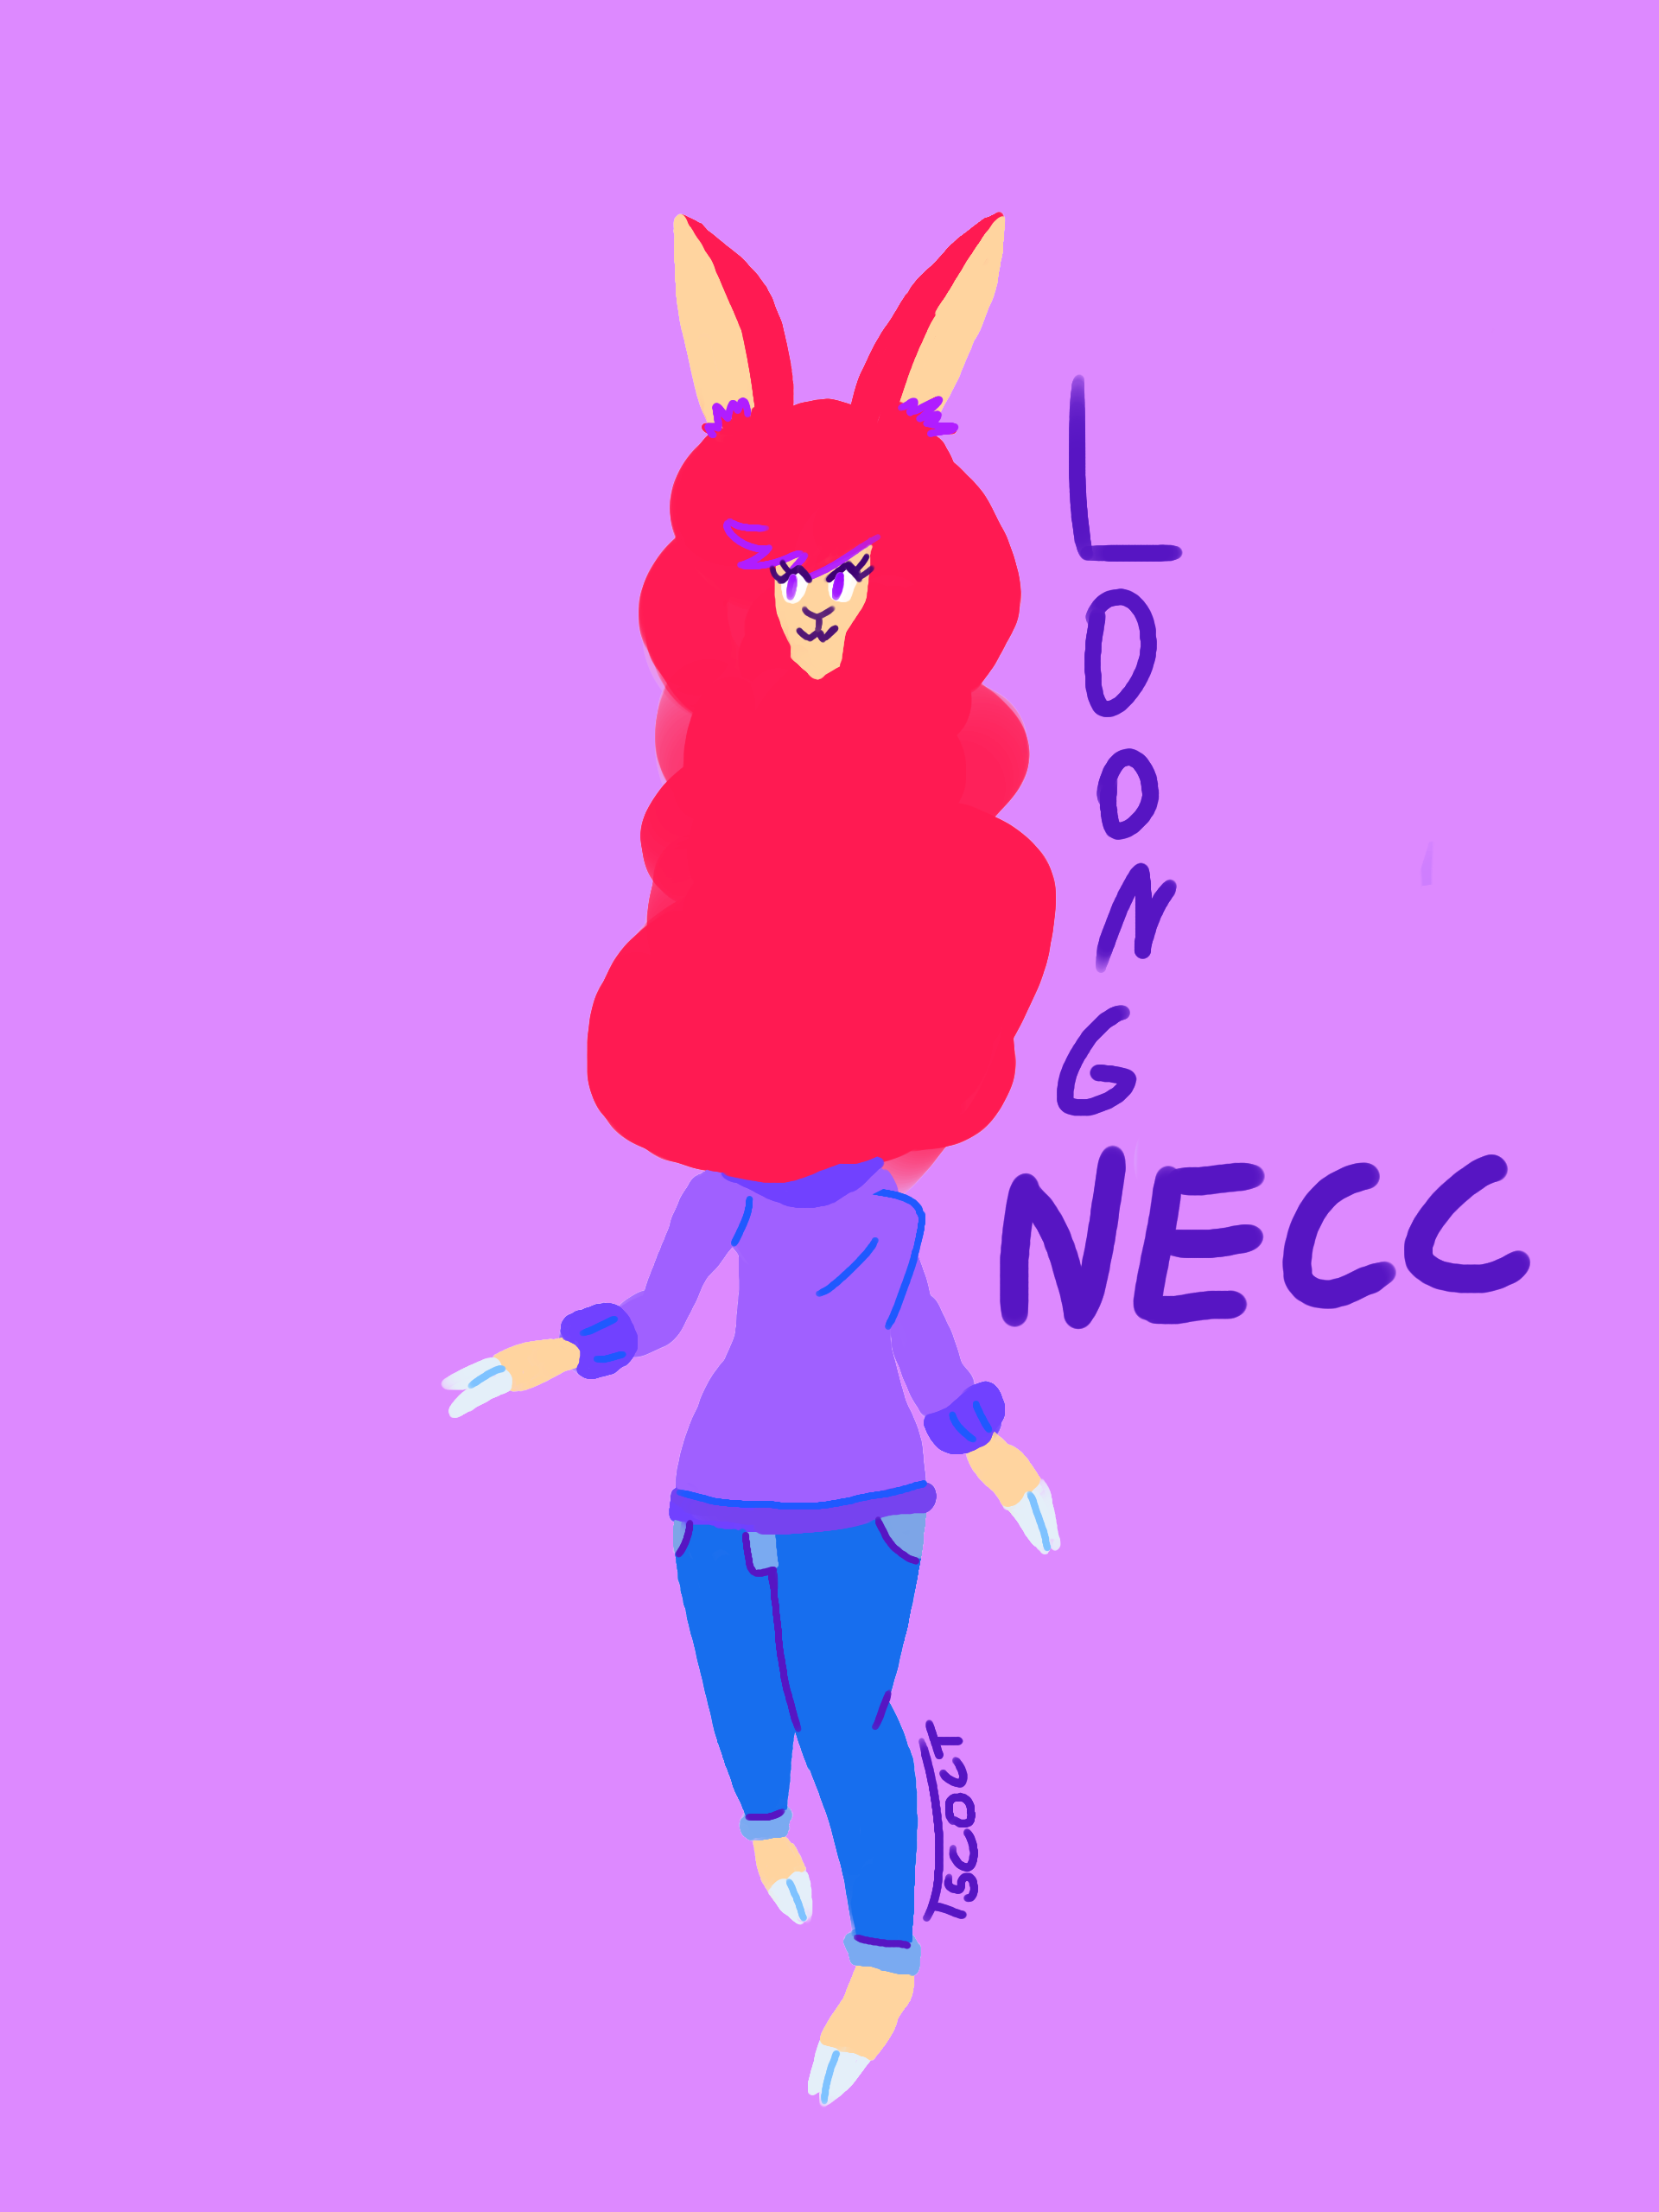 Loong necc Sarah(+3 other versions)